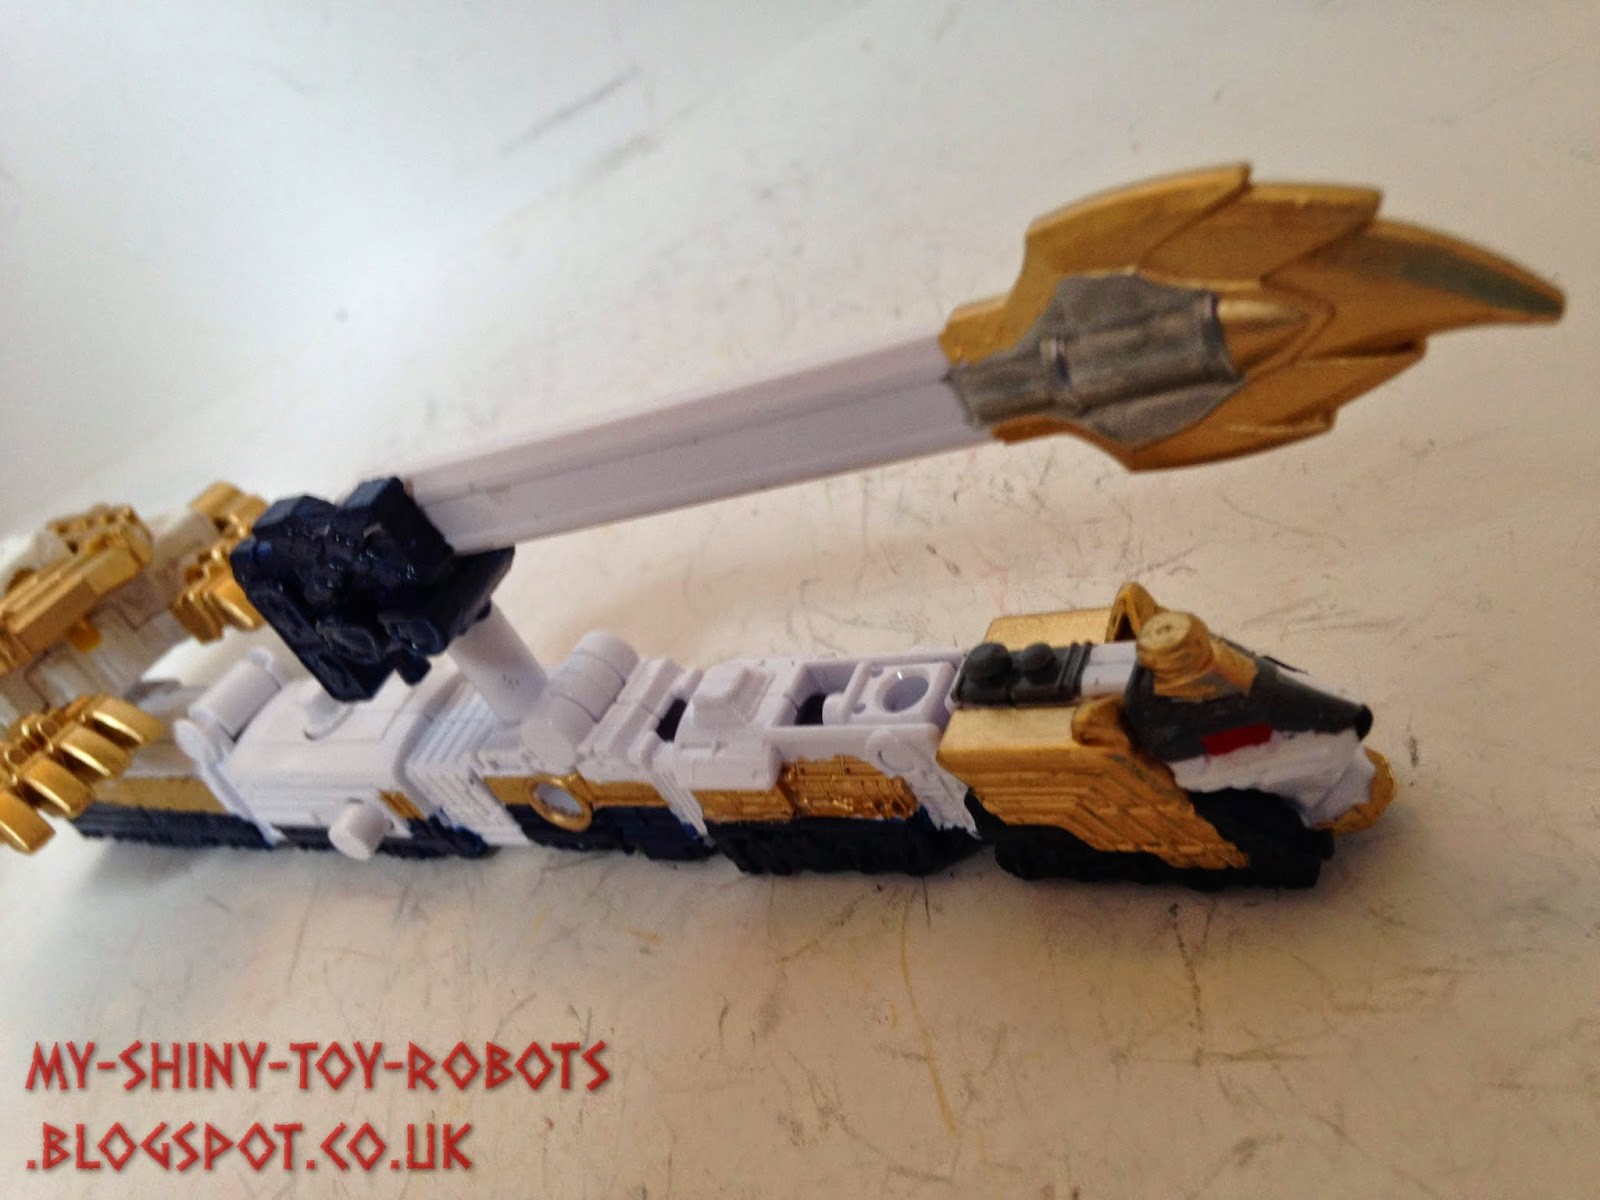 The tail/sword connected to the Lion Ressha